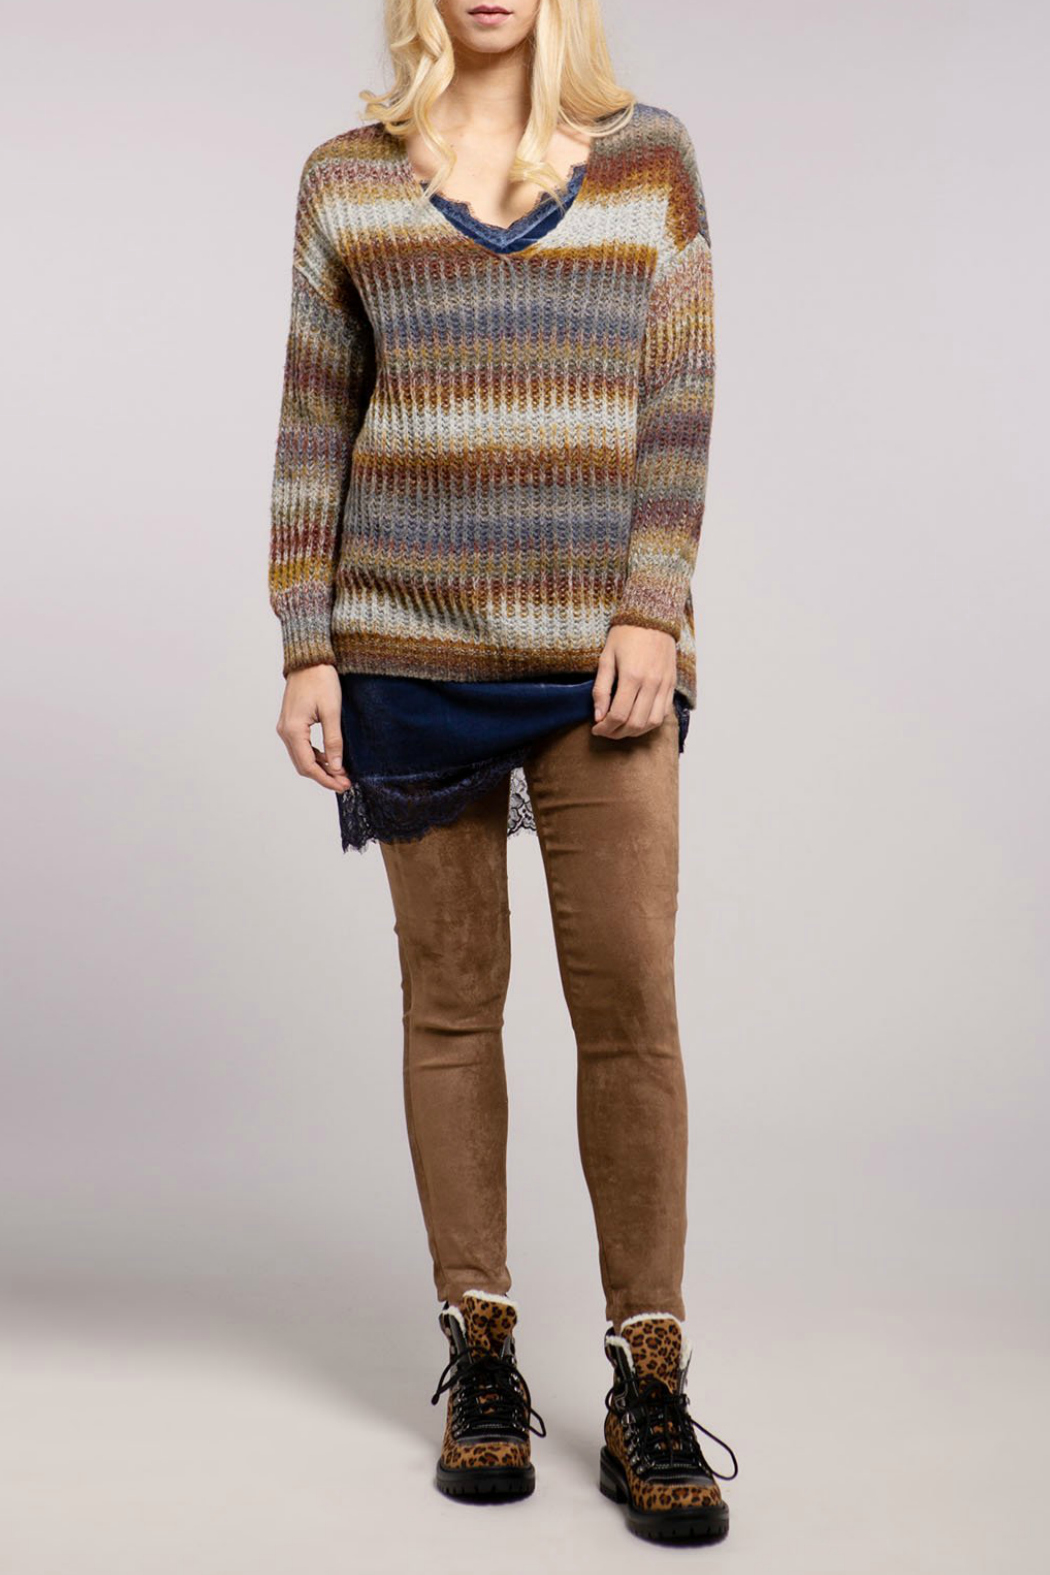 Baci Baja Ribbed V Neck Sweater - Main Image